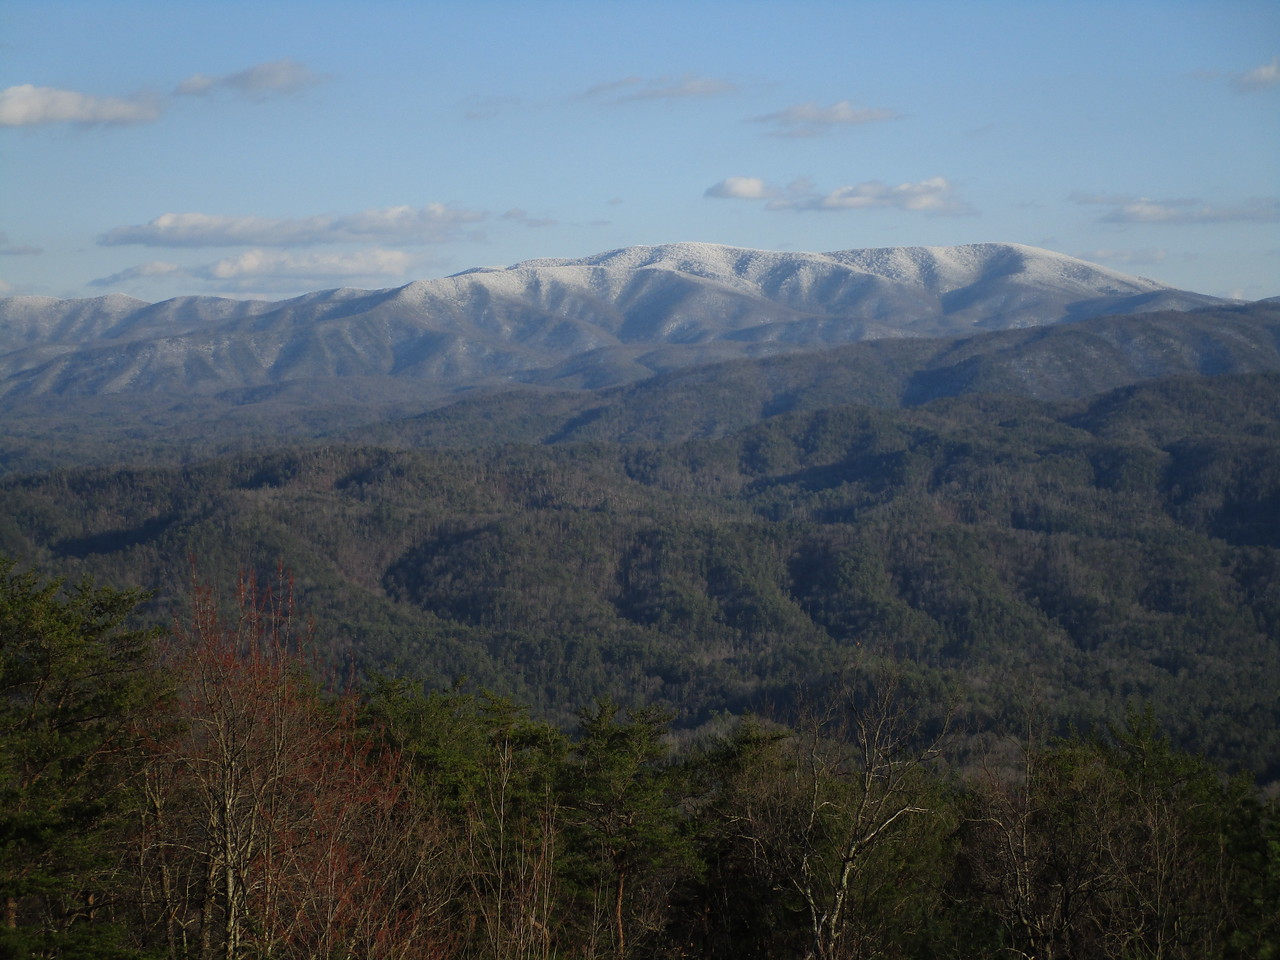 View of the Smokies from Foothills Parkway.